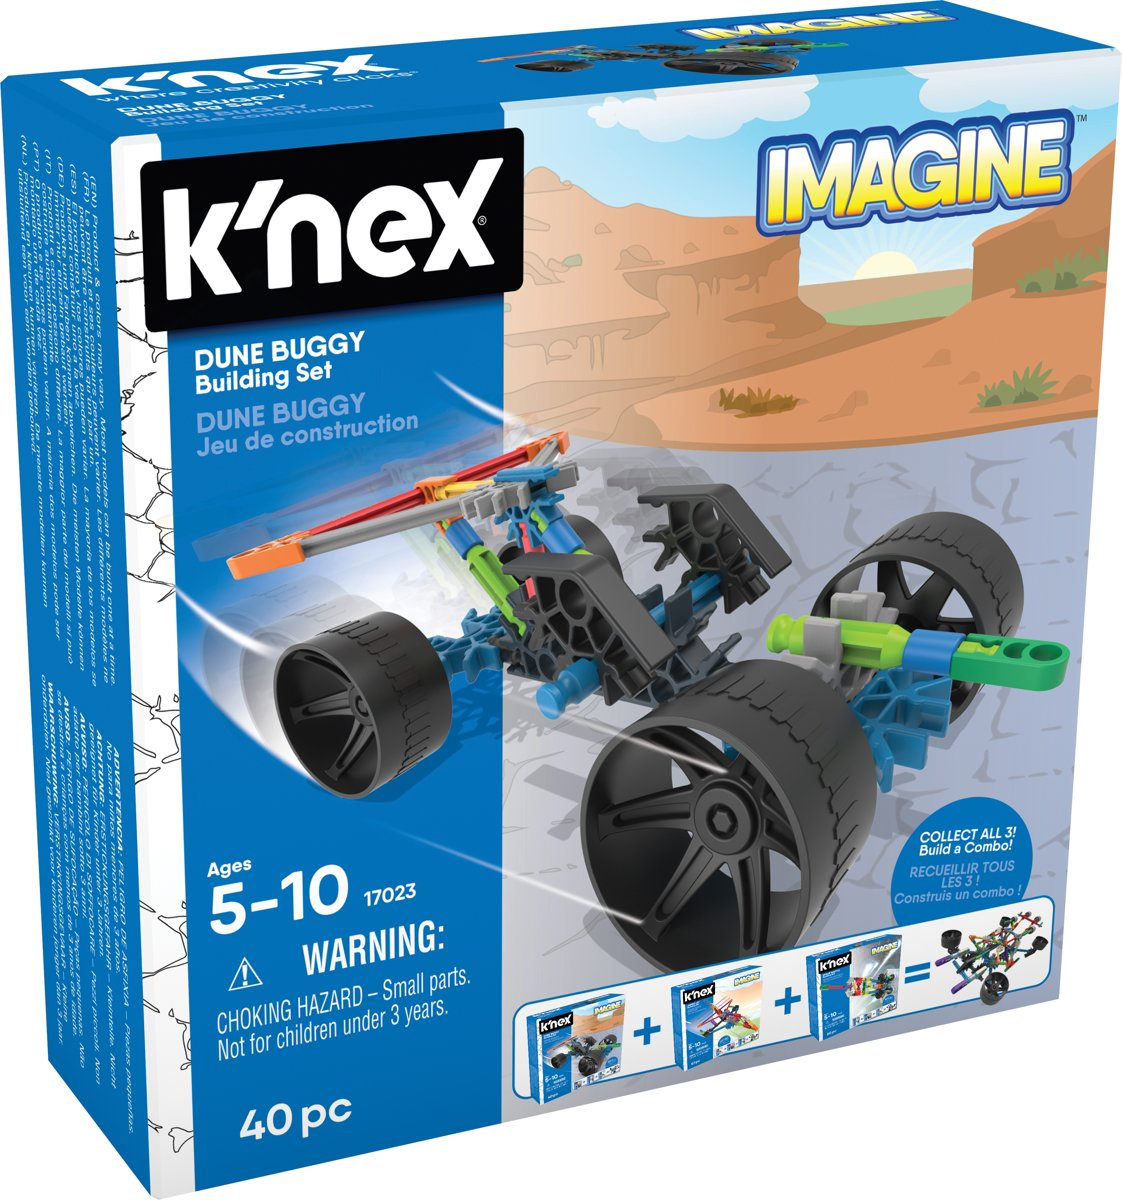 Knex Building Sets - Dune Buggy